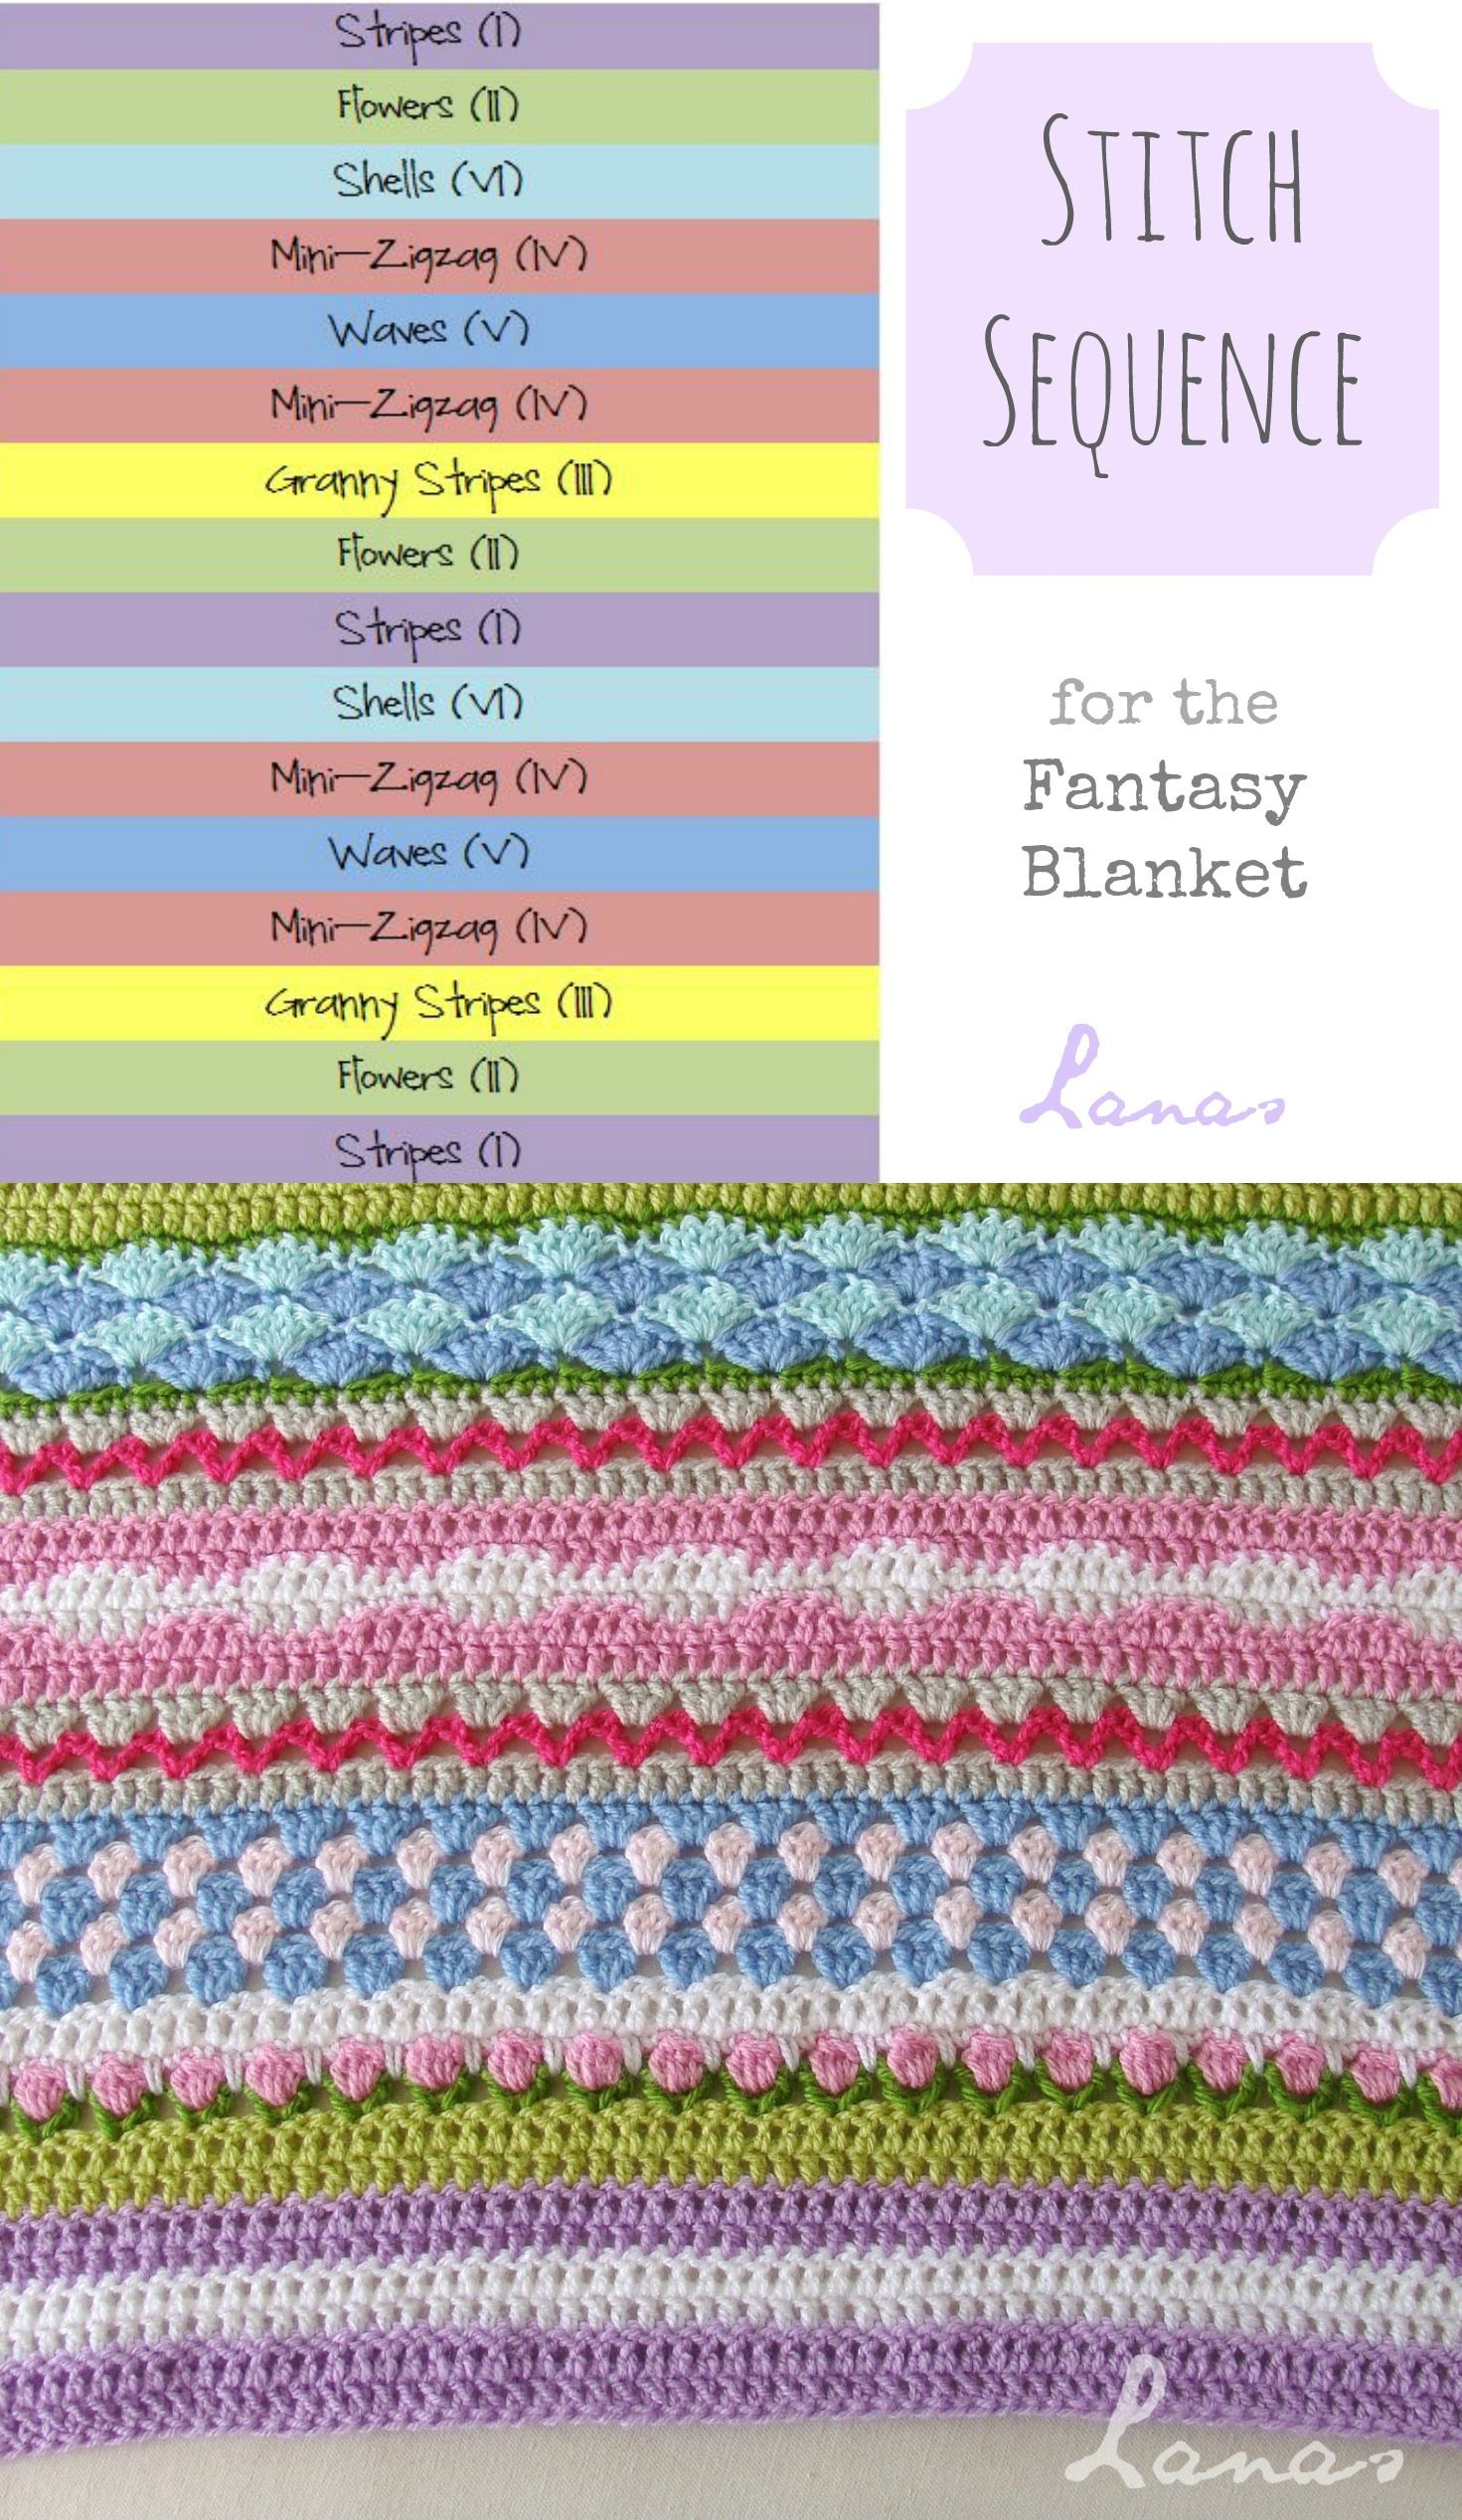 How to :: Fantasy Blanket stitch sequence - Free tutorials for each ...